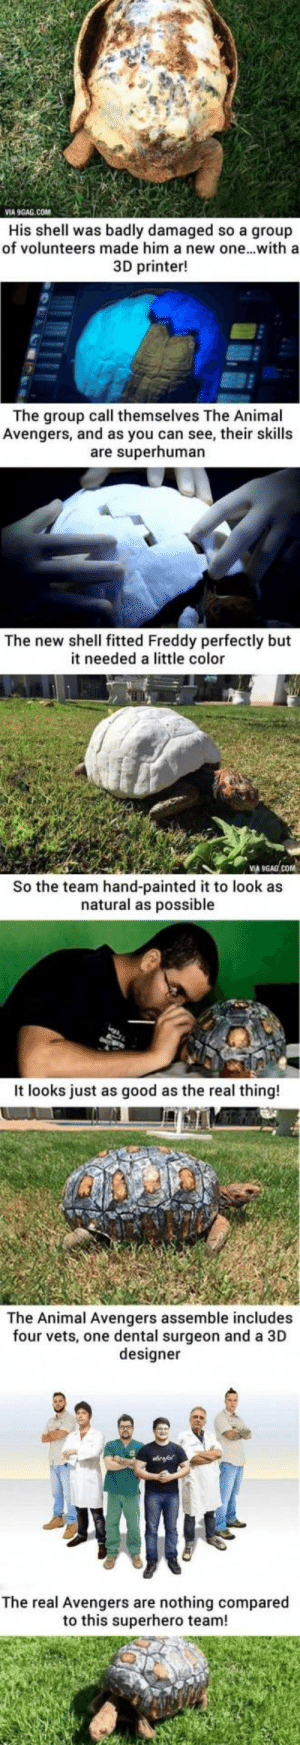 9gag, Superhero, and Tumblr: VIA 9GAG.COM  His shell was badly damaged so a group  of volunteers made him a new one...witha  3D printer!  The group call themselves The Animal  Avengers, and as you can see, their skills  are superhuman  The new shell fitted Freddy perfectly but  it needed a little color  VIA  COM  So the team hand-painted it to look as  natural as possible  It looks just as good as the real thing!  The Animal Avengers assemble includes  four vets, one dental surgeon and a 3D  designer  The real Avengers are nothing compared  to this superhero team! awesomacious:  Freddy the turtle ☺️